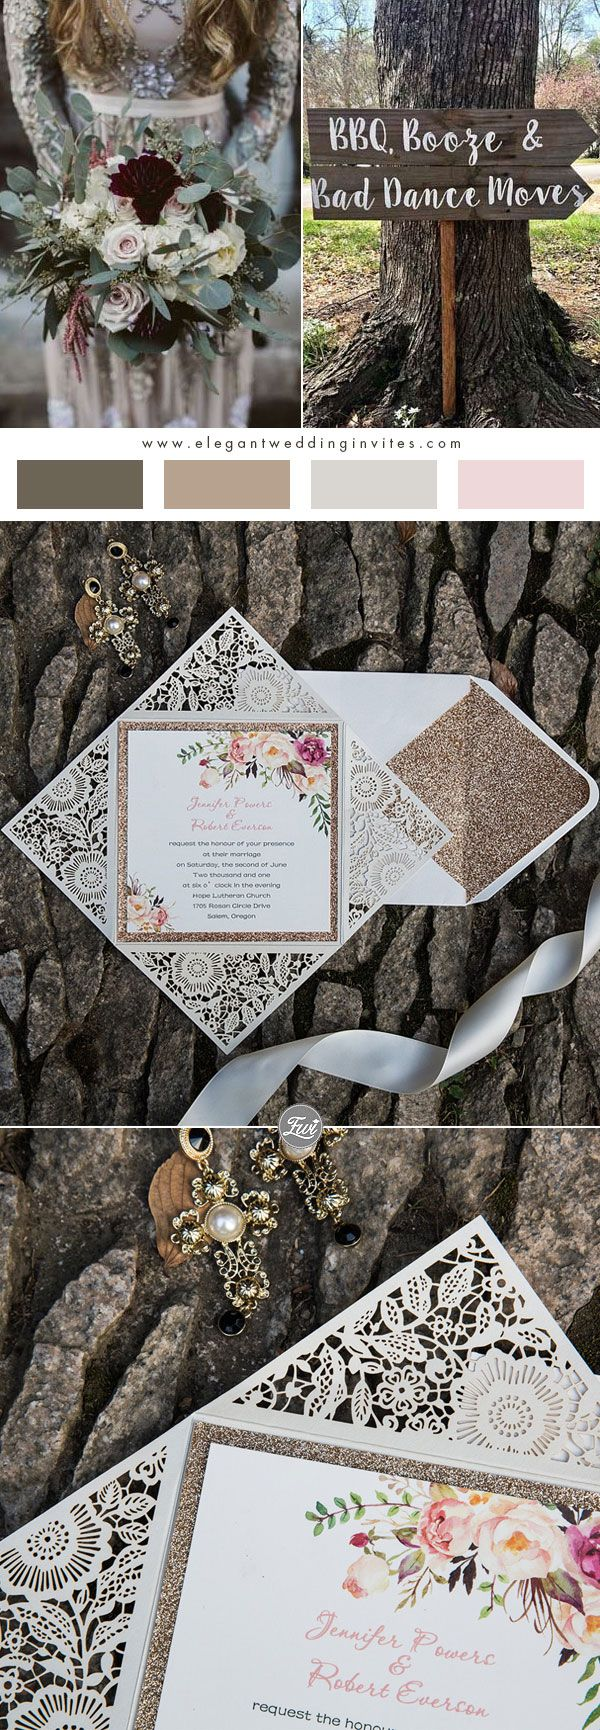 how to get directions for wedding invitations%0A Rustic Floral Rose Gold Glitter Laser Cut Wedding Invitations EWWS      rusticwedding  weddinginvitations  glitterweddinginvitations